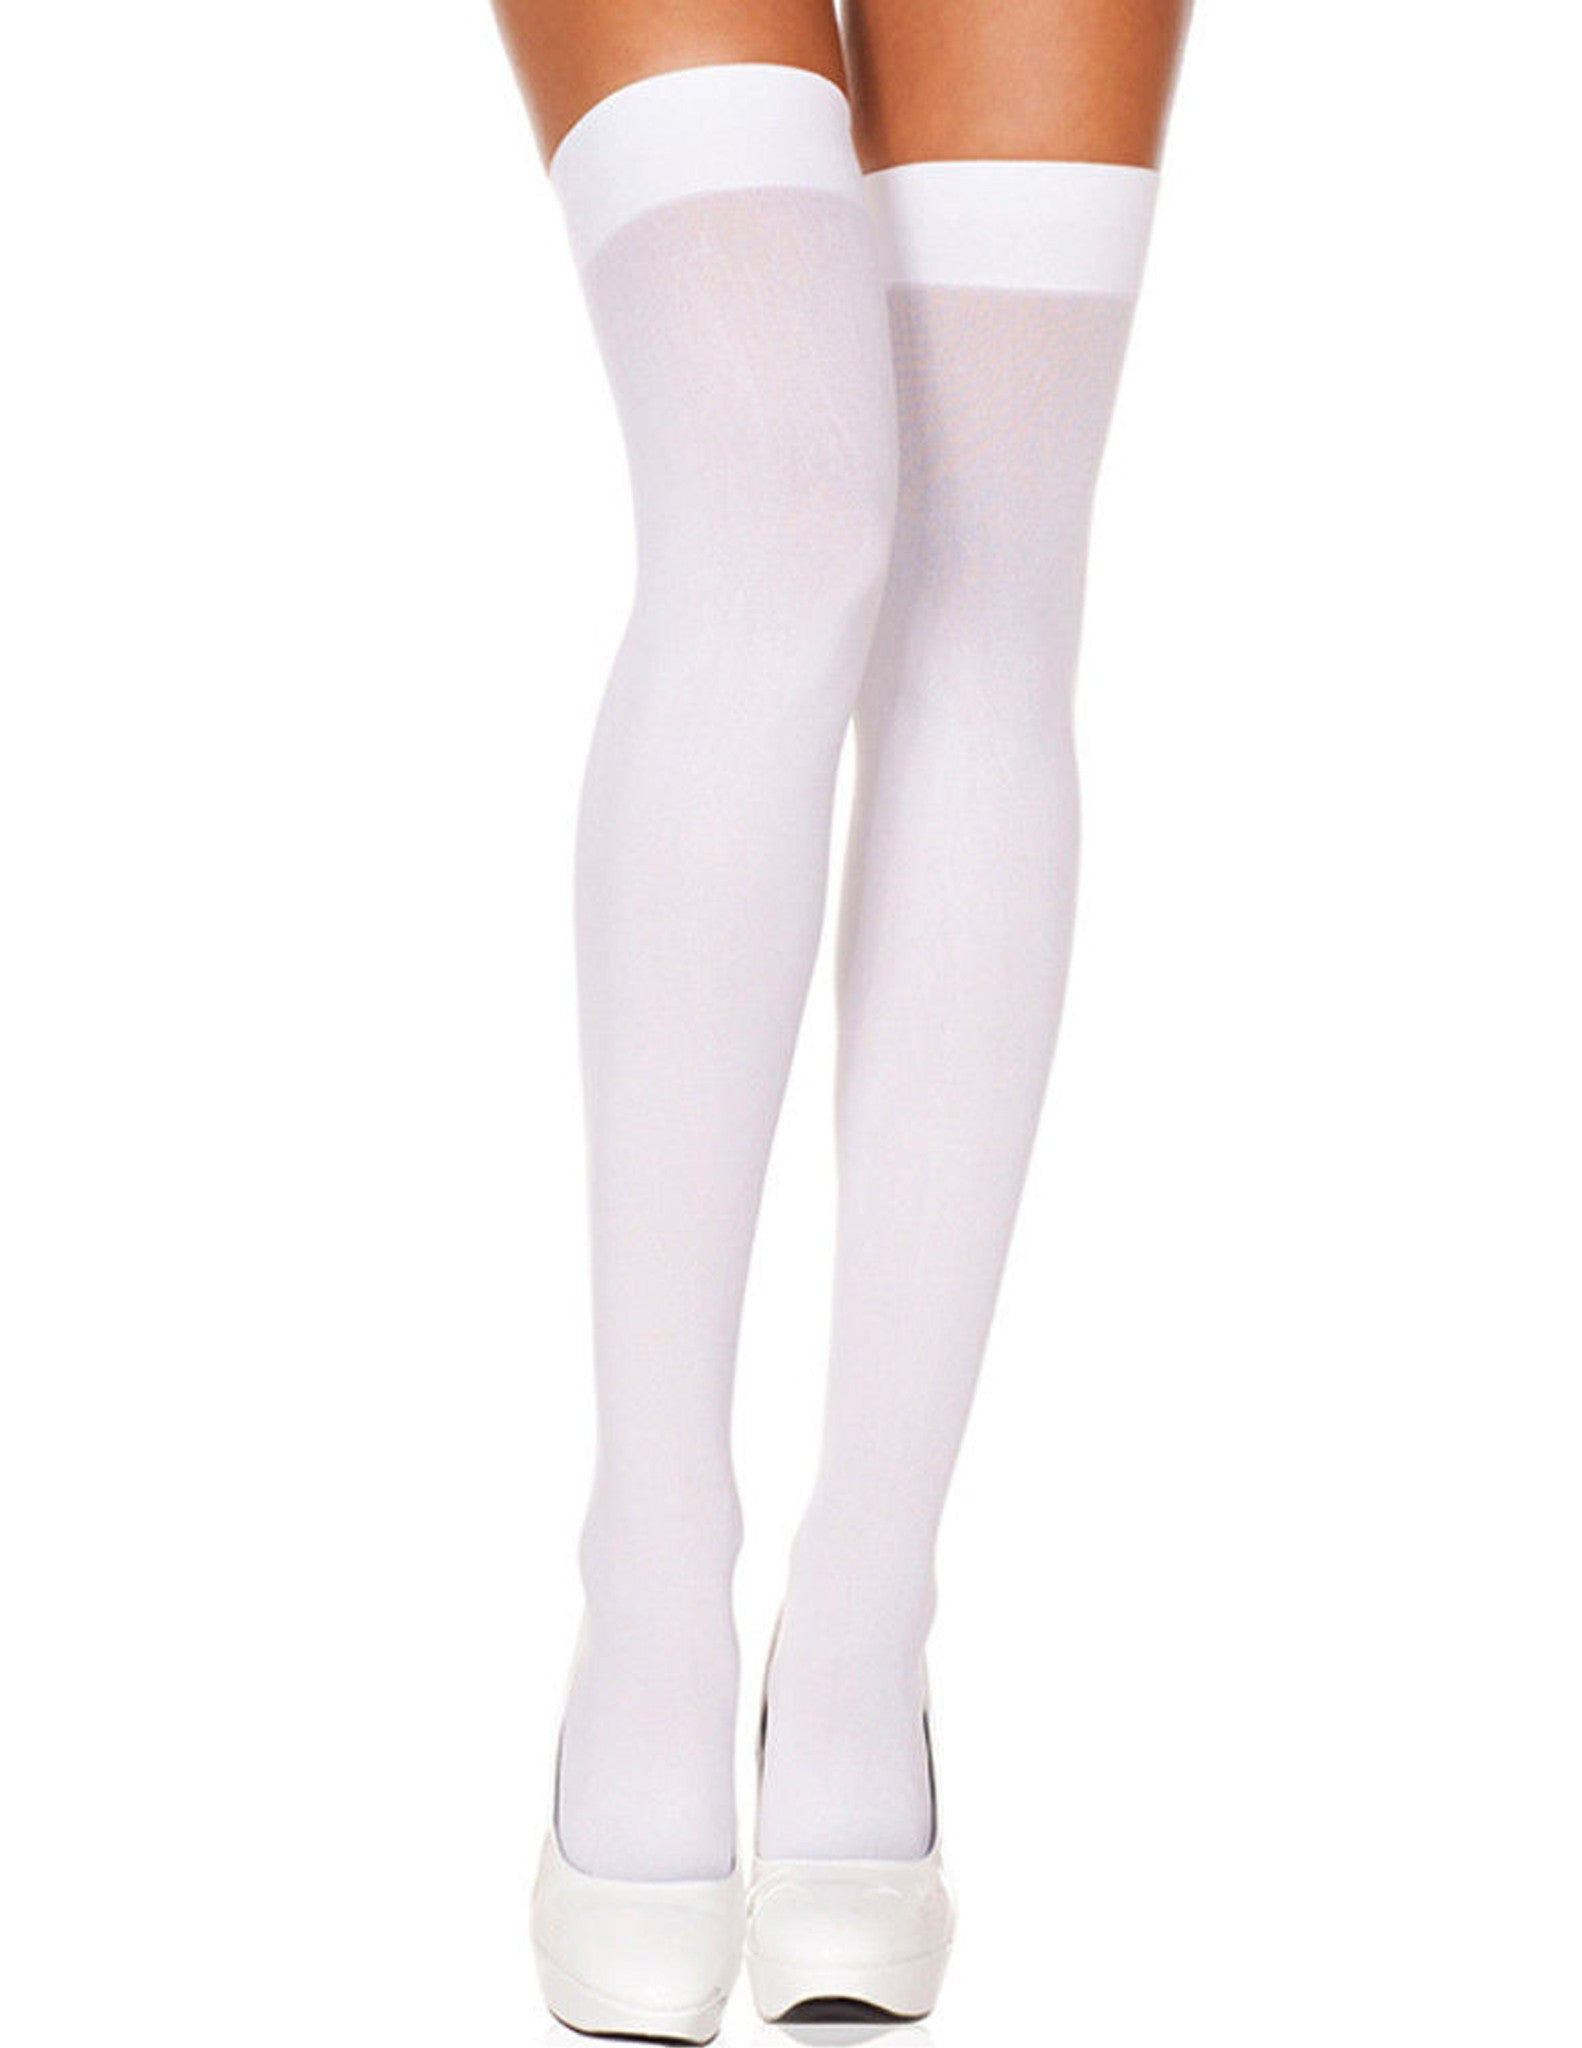 Plus Size White Opaque Thigh Hi Hosiery